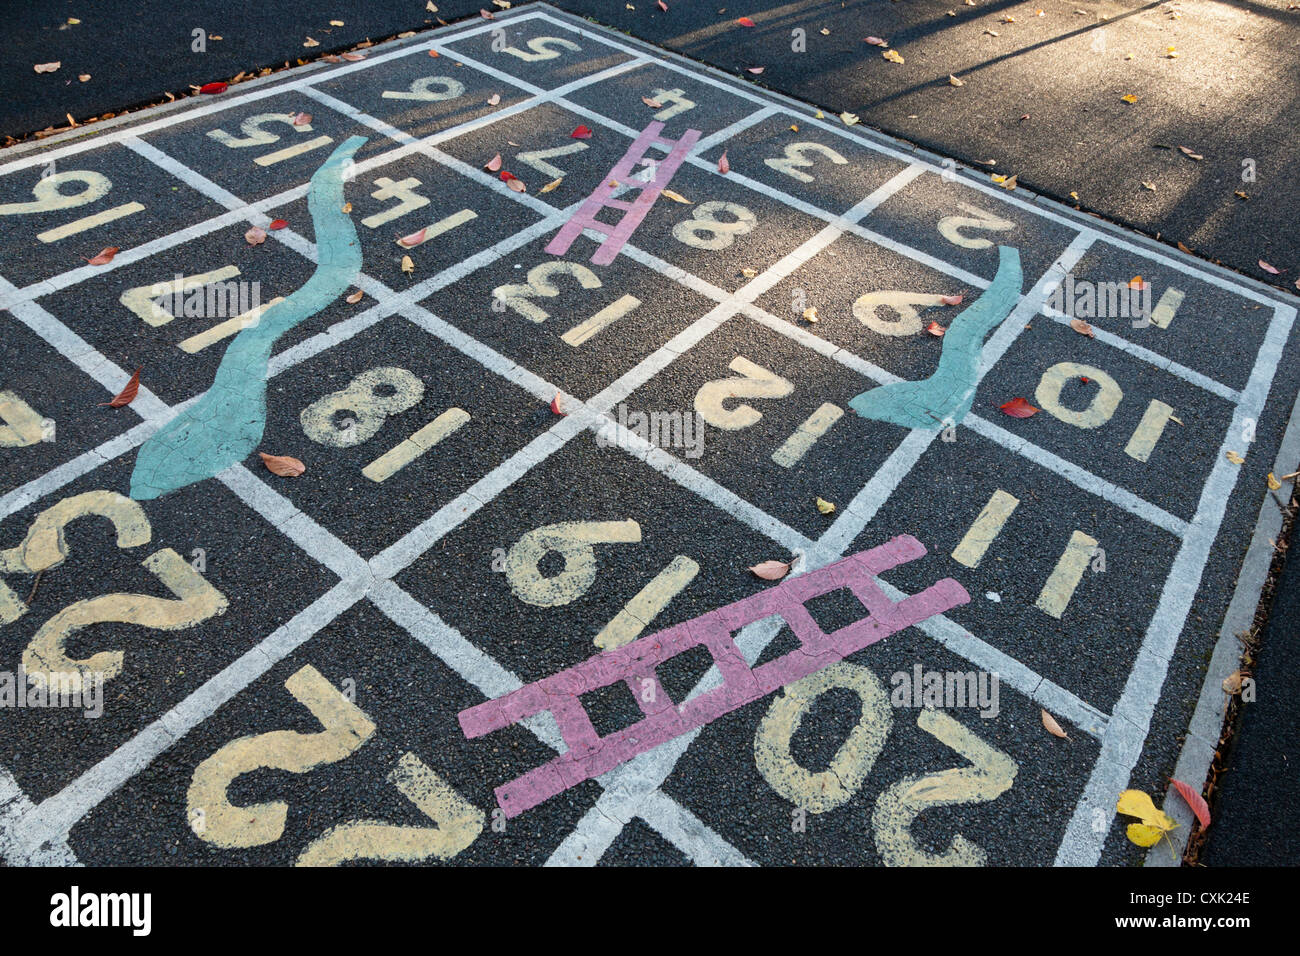 Snakes And Ladders Playground High Resolution Stock Photography And Images Alamy